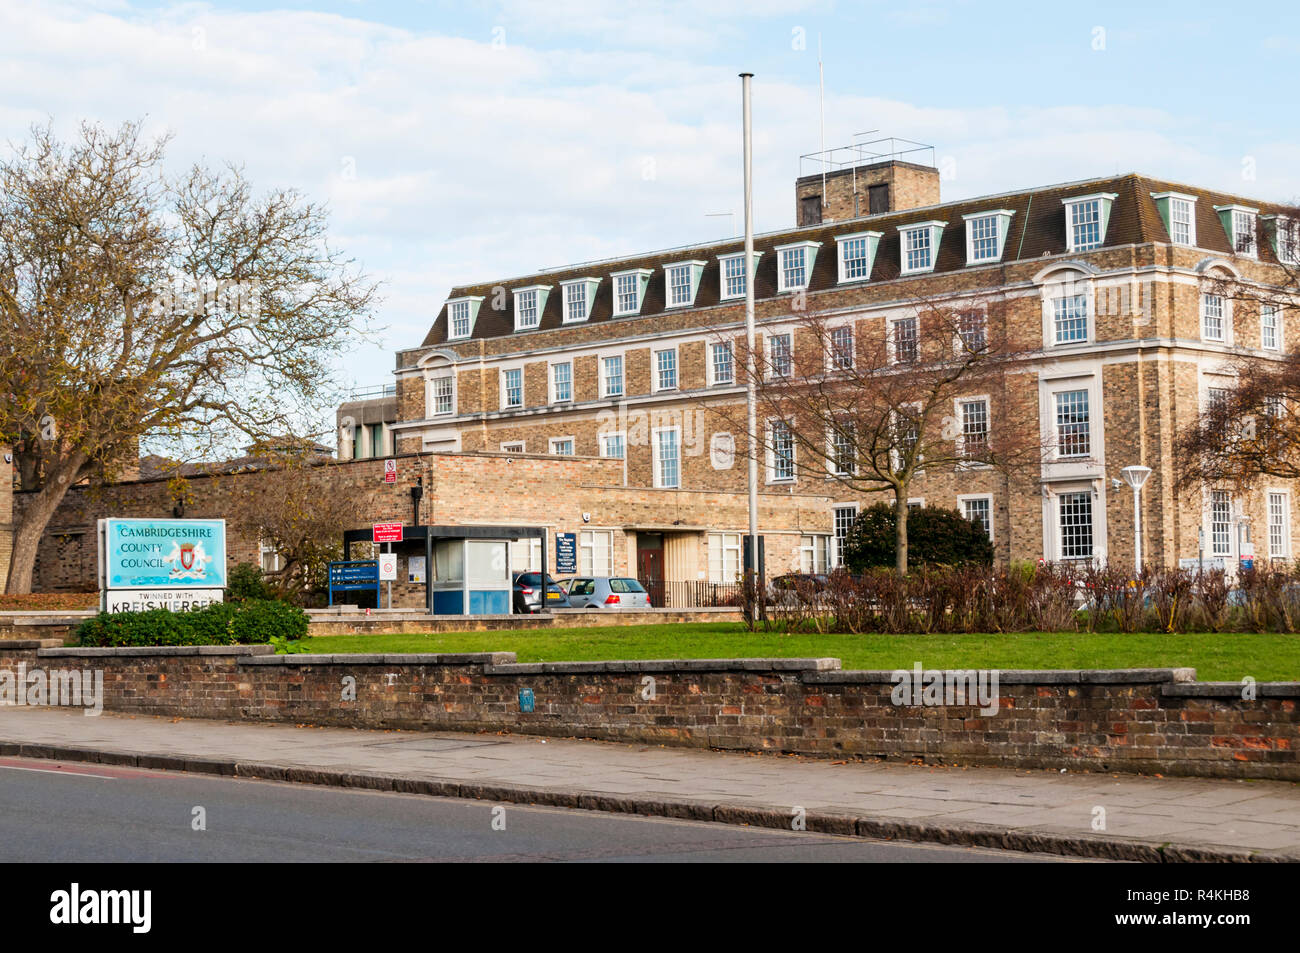 The premises of Cambridgeshire County Council in Castle Street, Cambridge. - Stock Image